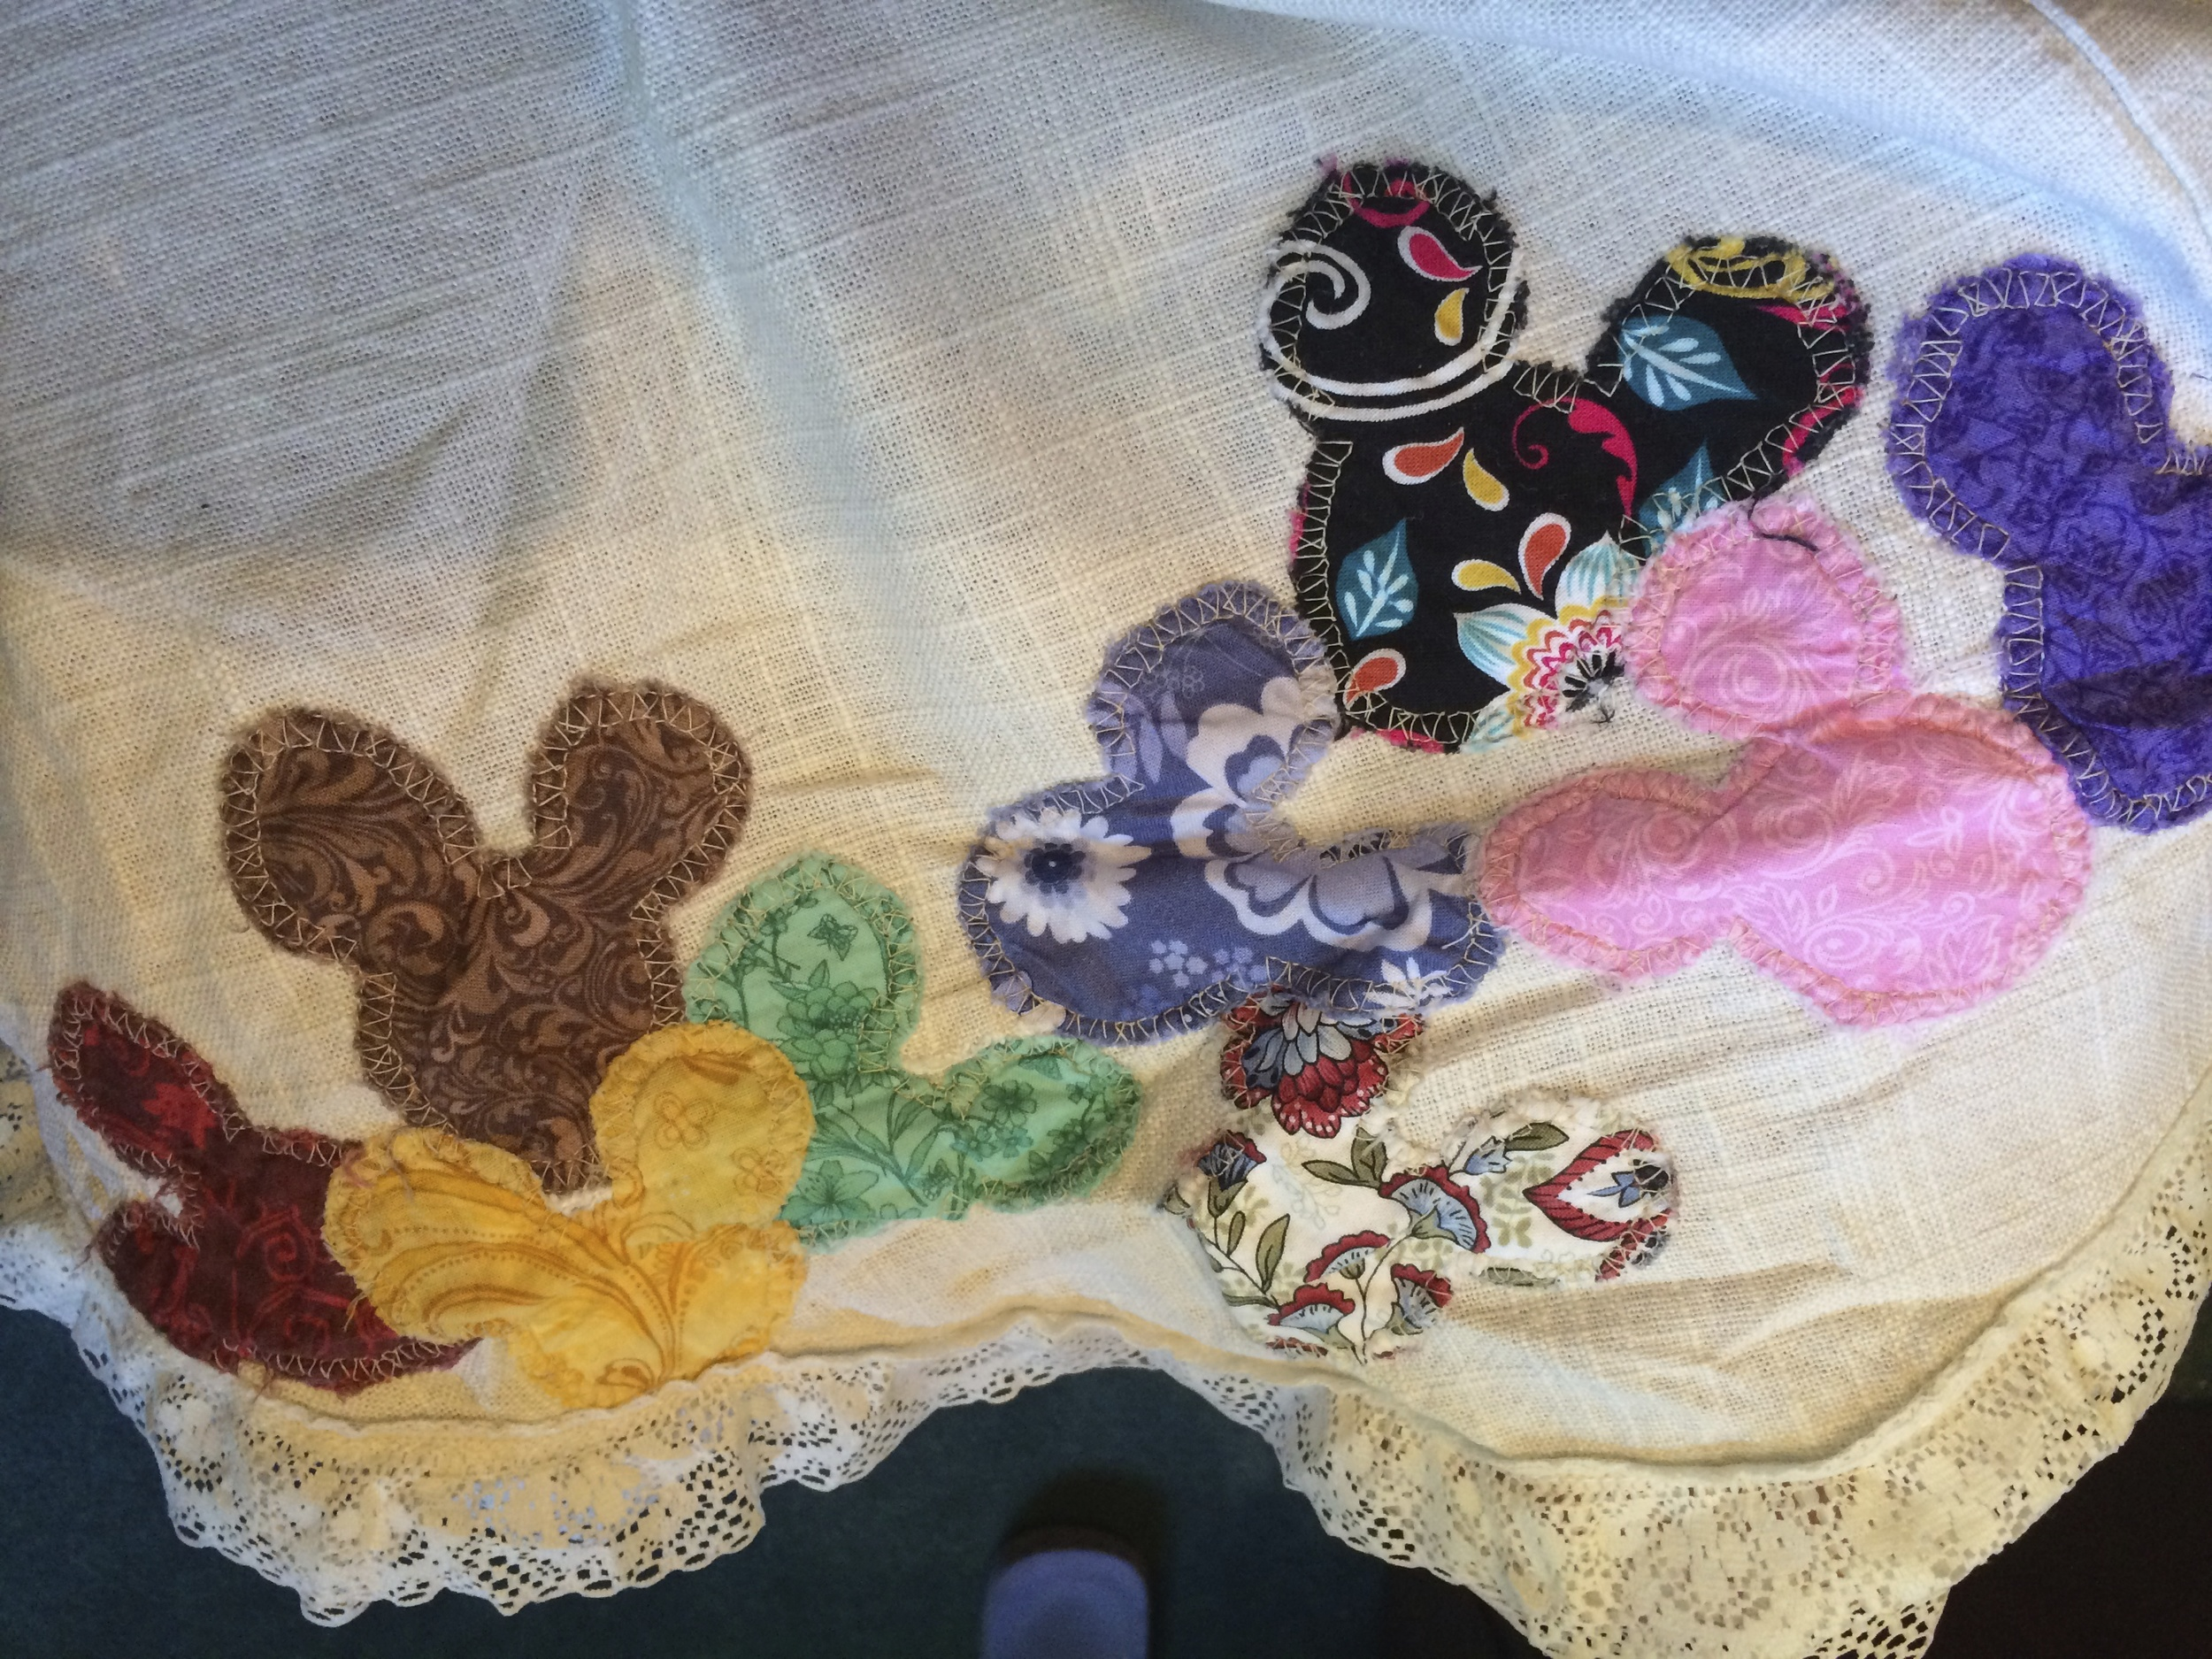 Underneath these colorful Mickey heads is actually a seam I sewed the wrong way.